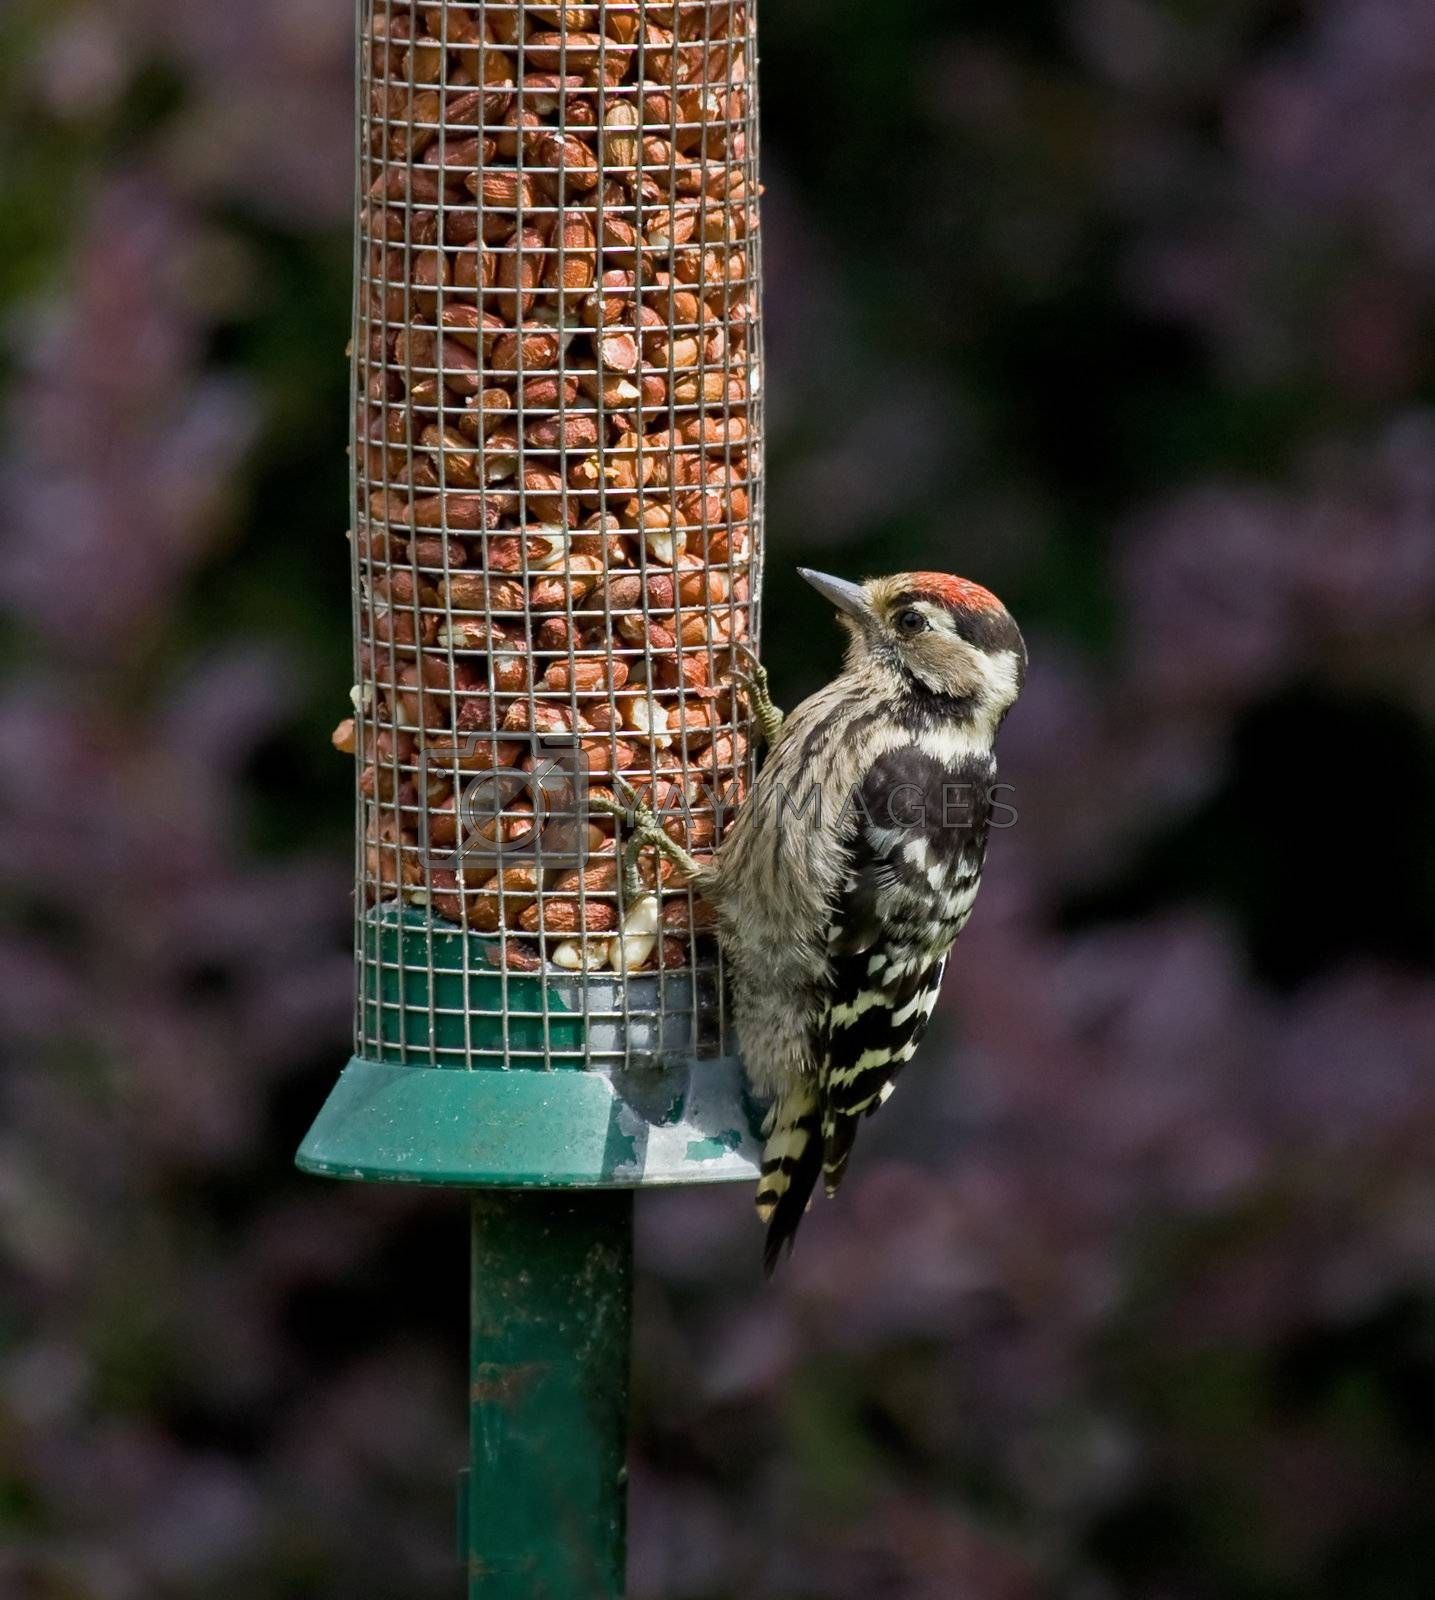 Royalty free image of Lesser Spotted Woodpecker by SueRob